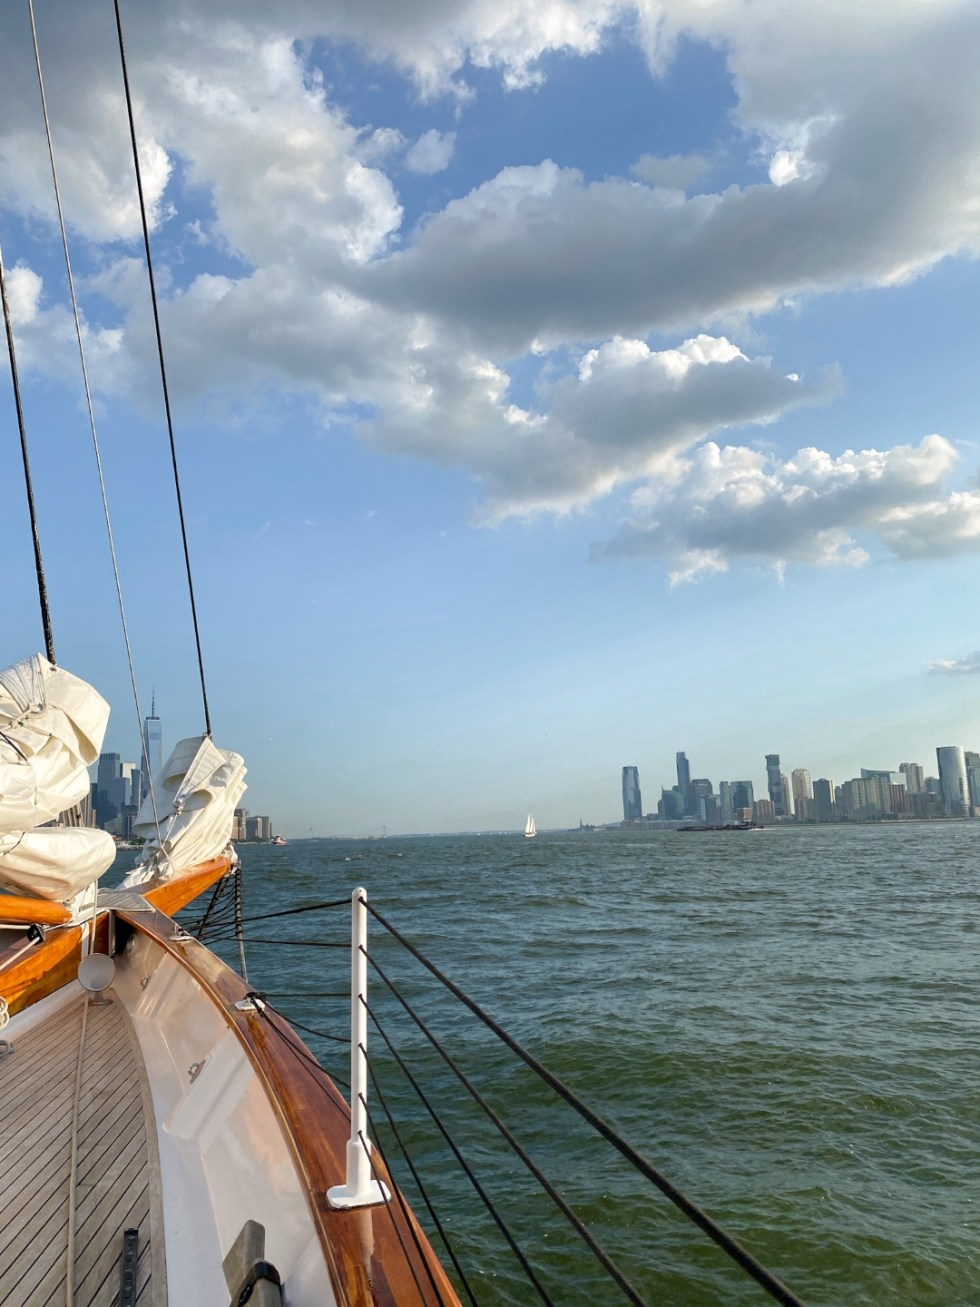 NYC Summer Weekend: Things to Do in NYC in the Summer - I'm Fixin' To - @imfixintoblog   NYC Summer Weekend by popular NC travel blog, I'm Fixin' To: image of a sailboat and the NYC skyline.